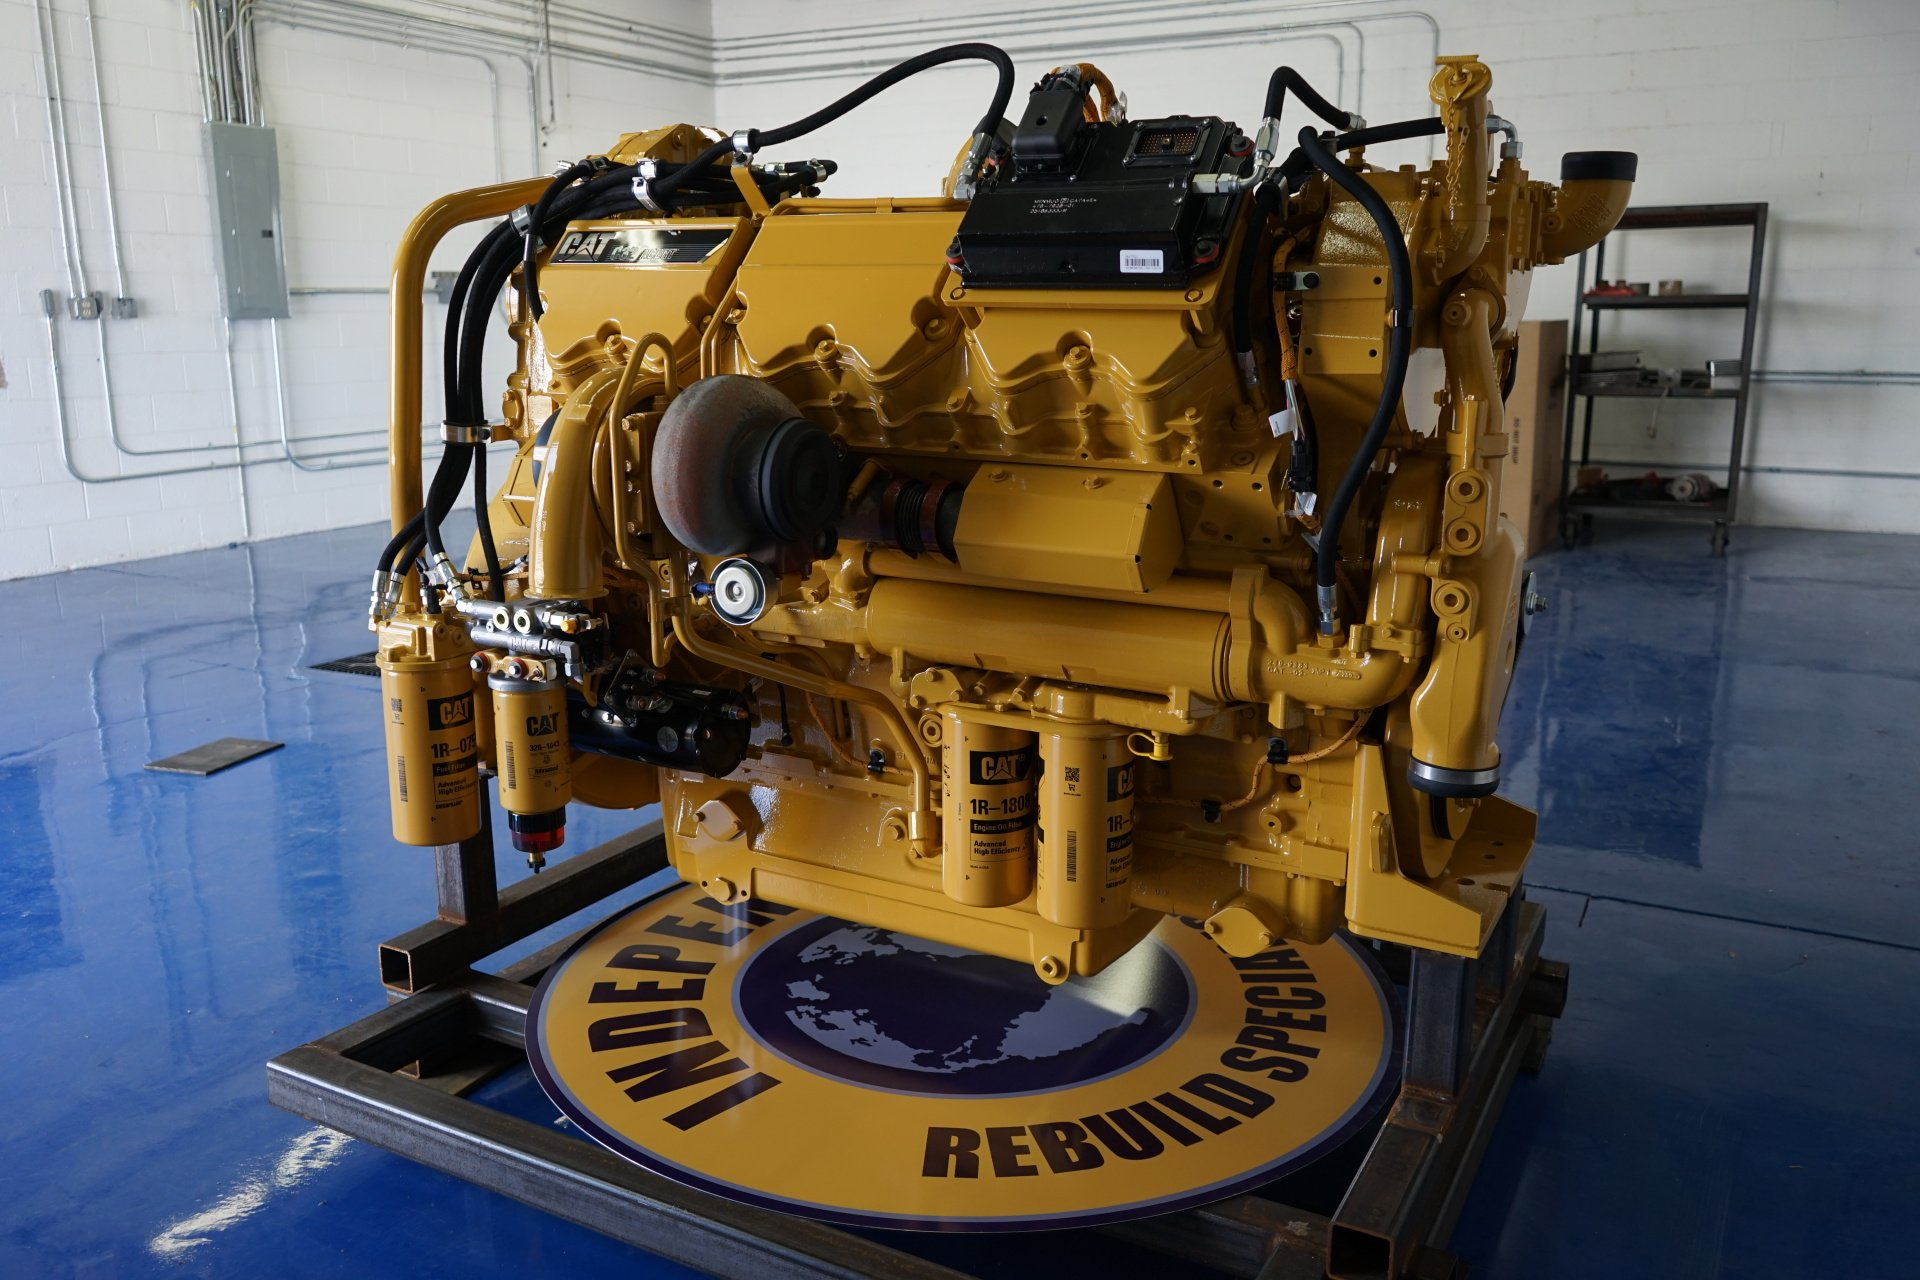 Cat Engines For Sale New And Rebuilt Caterpillar Motors 3306 Wiring Harness Construction Equipment Mining Worldwide